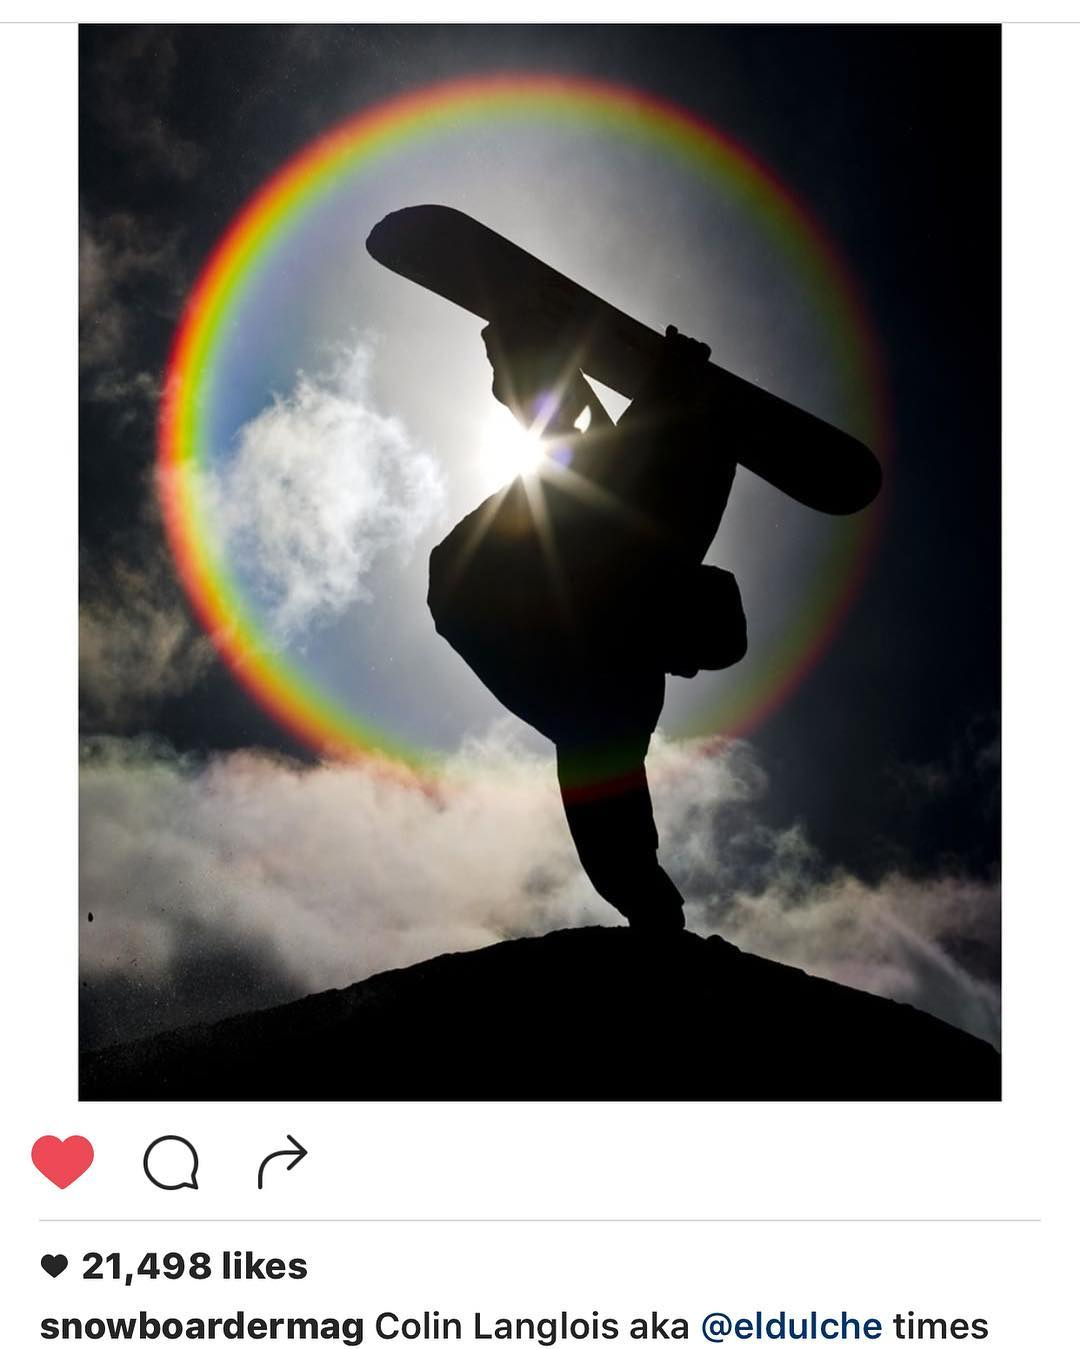 Repost from @snowboarder of @ramiro_eldulcero707 what a great shot. #forridersbyriders | #mellomagnetraction | #futurefreeride | #3yearwarranty | #handmadeusa | #smokinsnowboards |